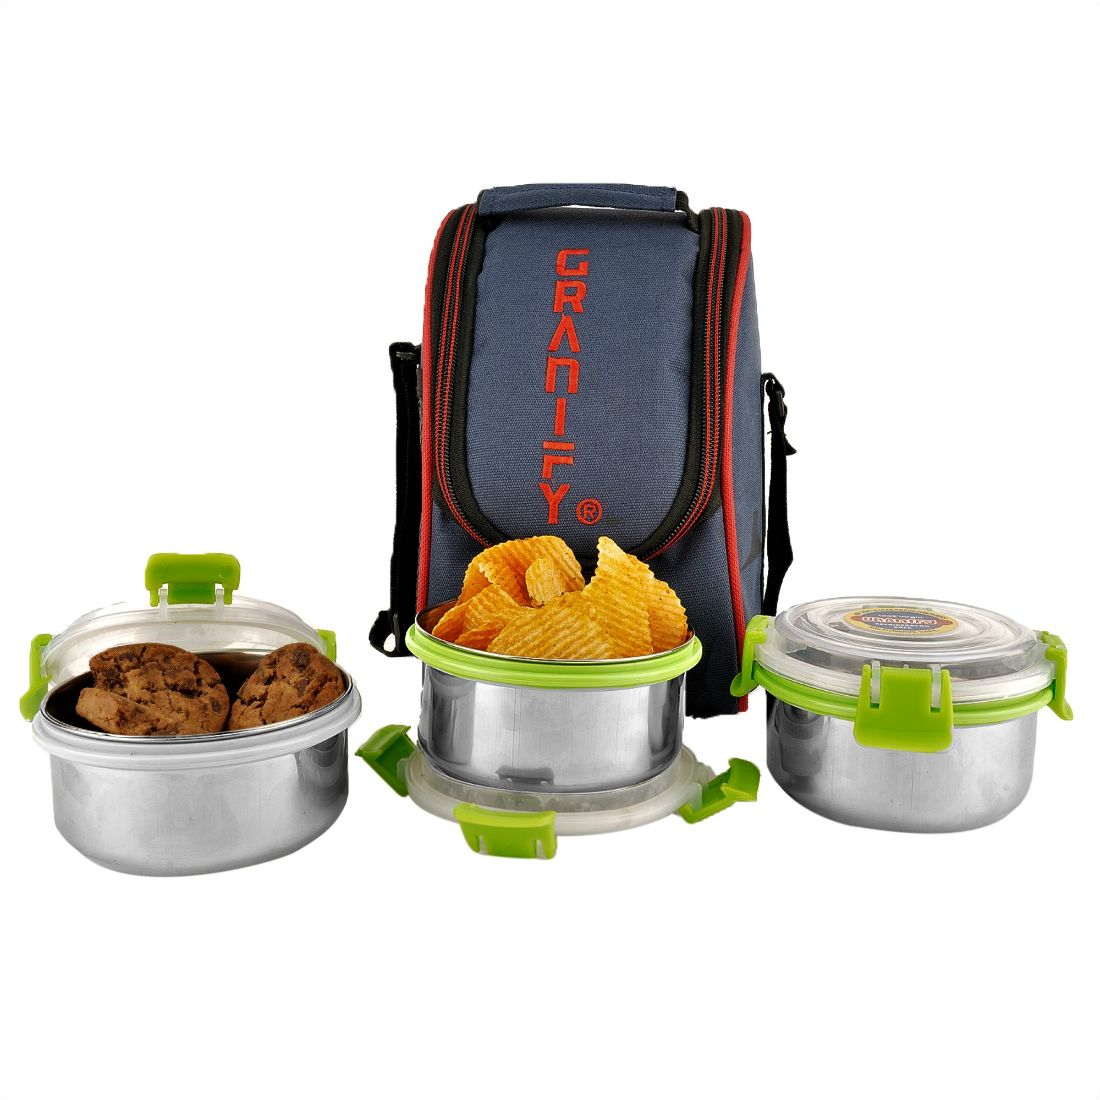 GRANIFY Lunch Box   3 Steel Containers With Bag Cover   G